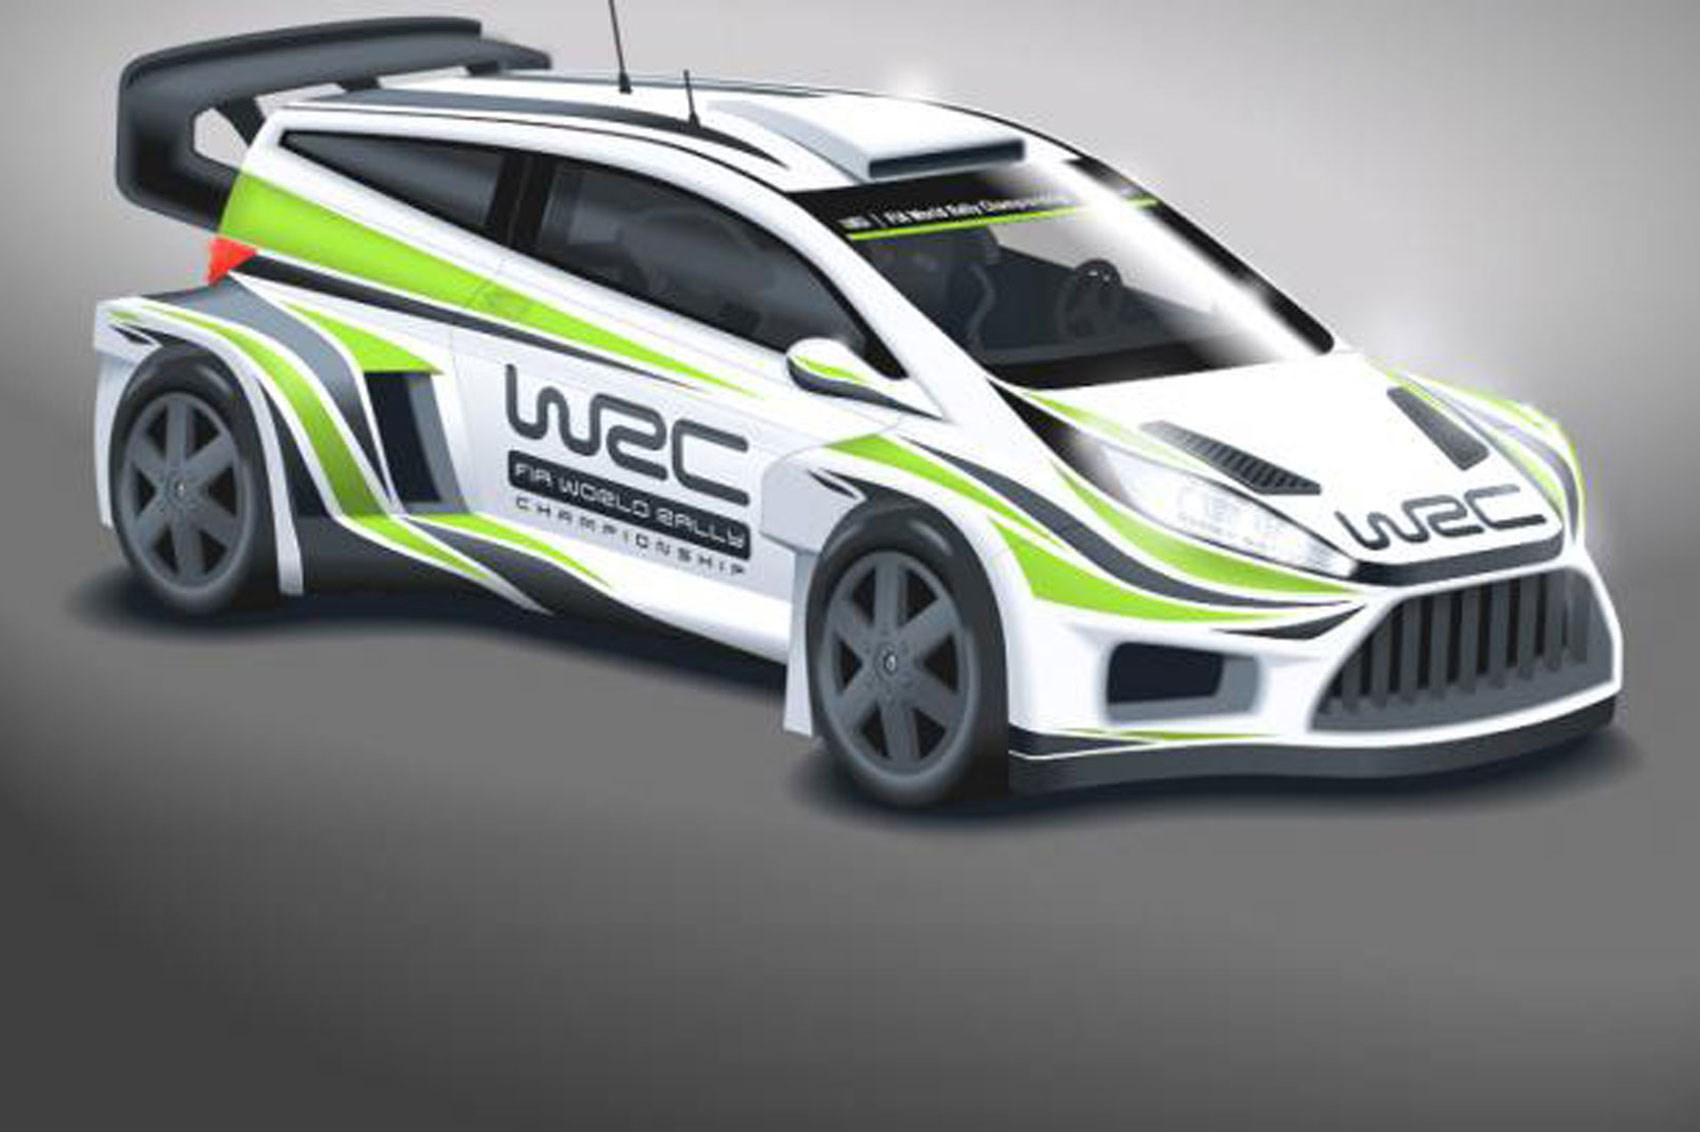 Ultrablogus  Marvelous Wild New Look For Wrc Cars In  By Car Magazine With Likable Wrc Cars Will Get Wider Bodies Bigger Wings And More Power For  With Attractive  Subaru Forester Interior Also  Mustang Gt Interior In Addition  Sti Interior And Nissan Armada Interior Dimensions As Well As Interior Mitsubishi Mirage Additionally  Infiniti I Interior From Carmagazinecouk With Ultrablogus  Likable Wild New Look For Wrc Cars In  By Car Magazine With Attractive Wrc Cars Will Get Wider Bodies Bigger Wings And More Power For  And Marvelous  Subaru Forester Interior Also  Mustang Gt Interior In Addition  Sti Interior From Carmagazinecouk